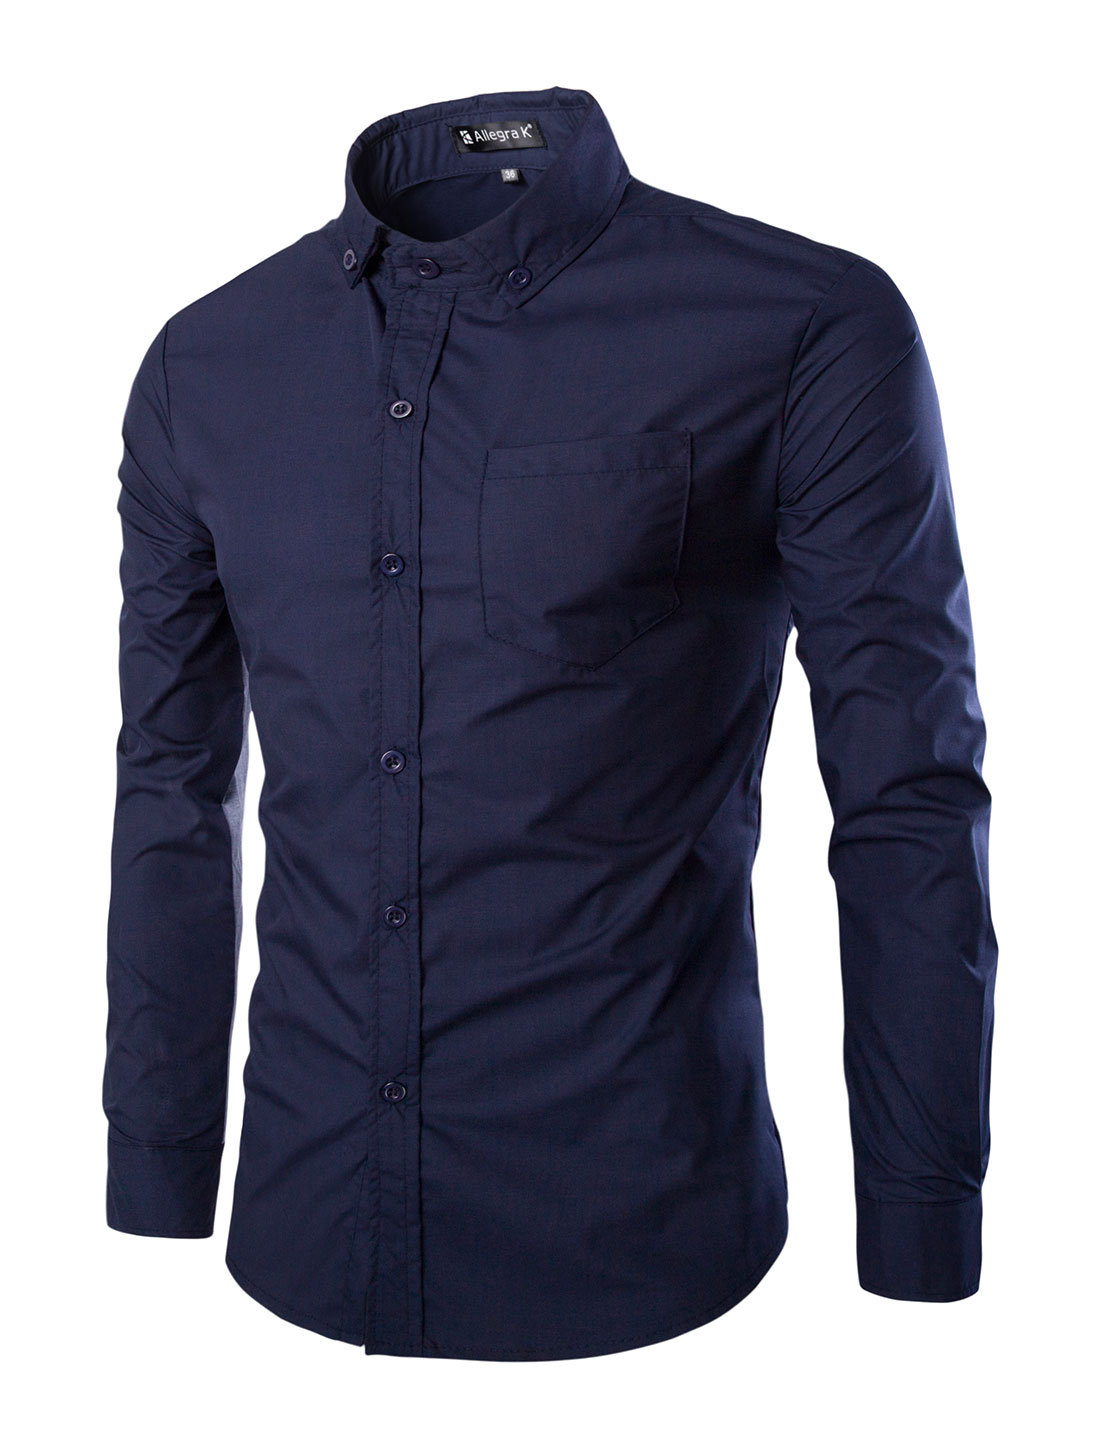 Men Contrast Color Long Sleeves Button Down Shirt Blue L